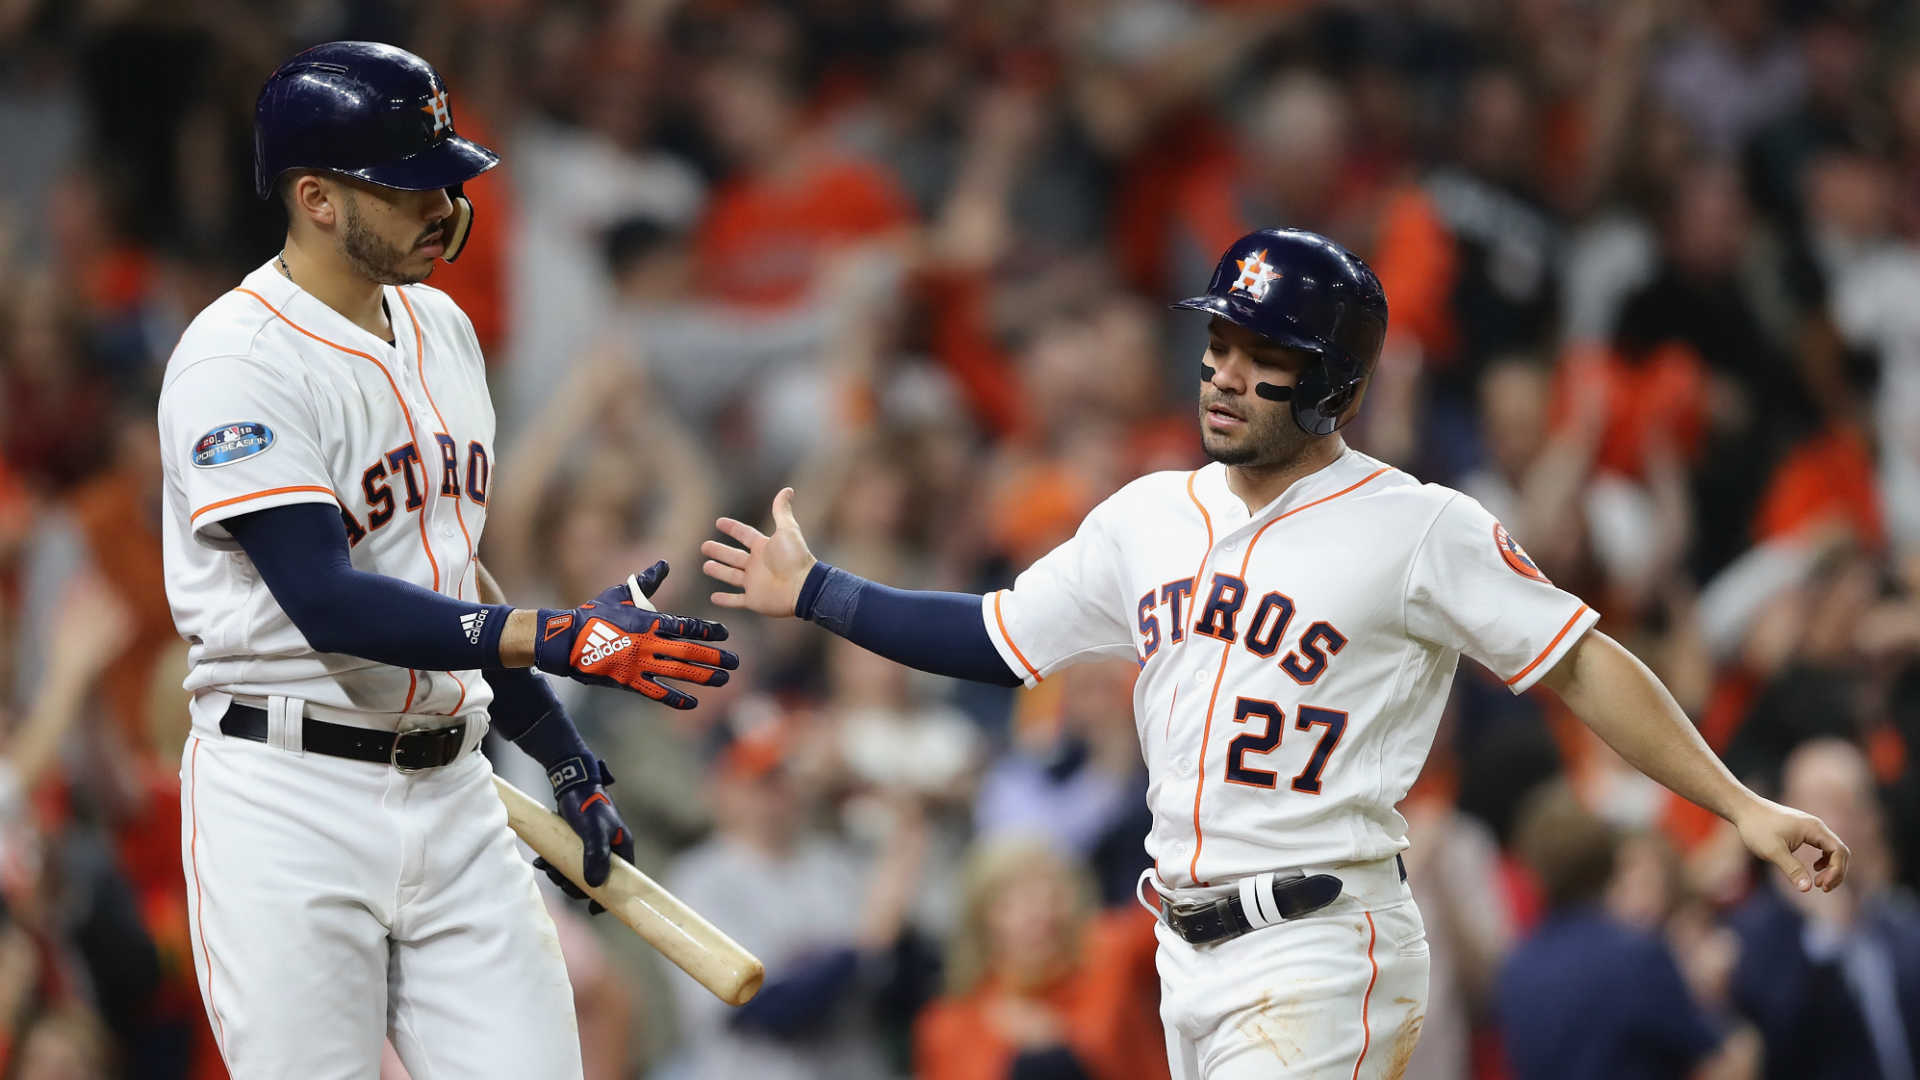 """Injuries suck,"" manager A.J. Hinch said. He should know. Houston has been rocked this week, with two All-Stars the latest to be hit."